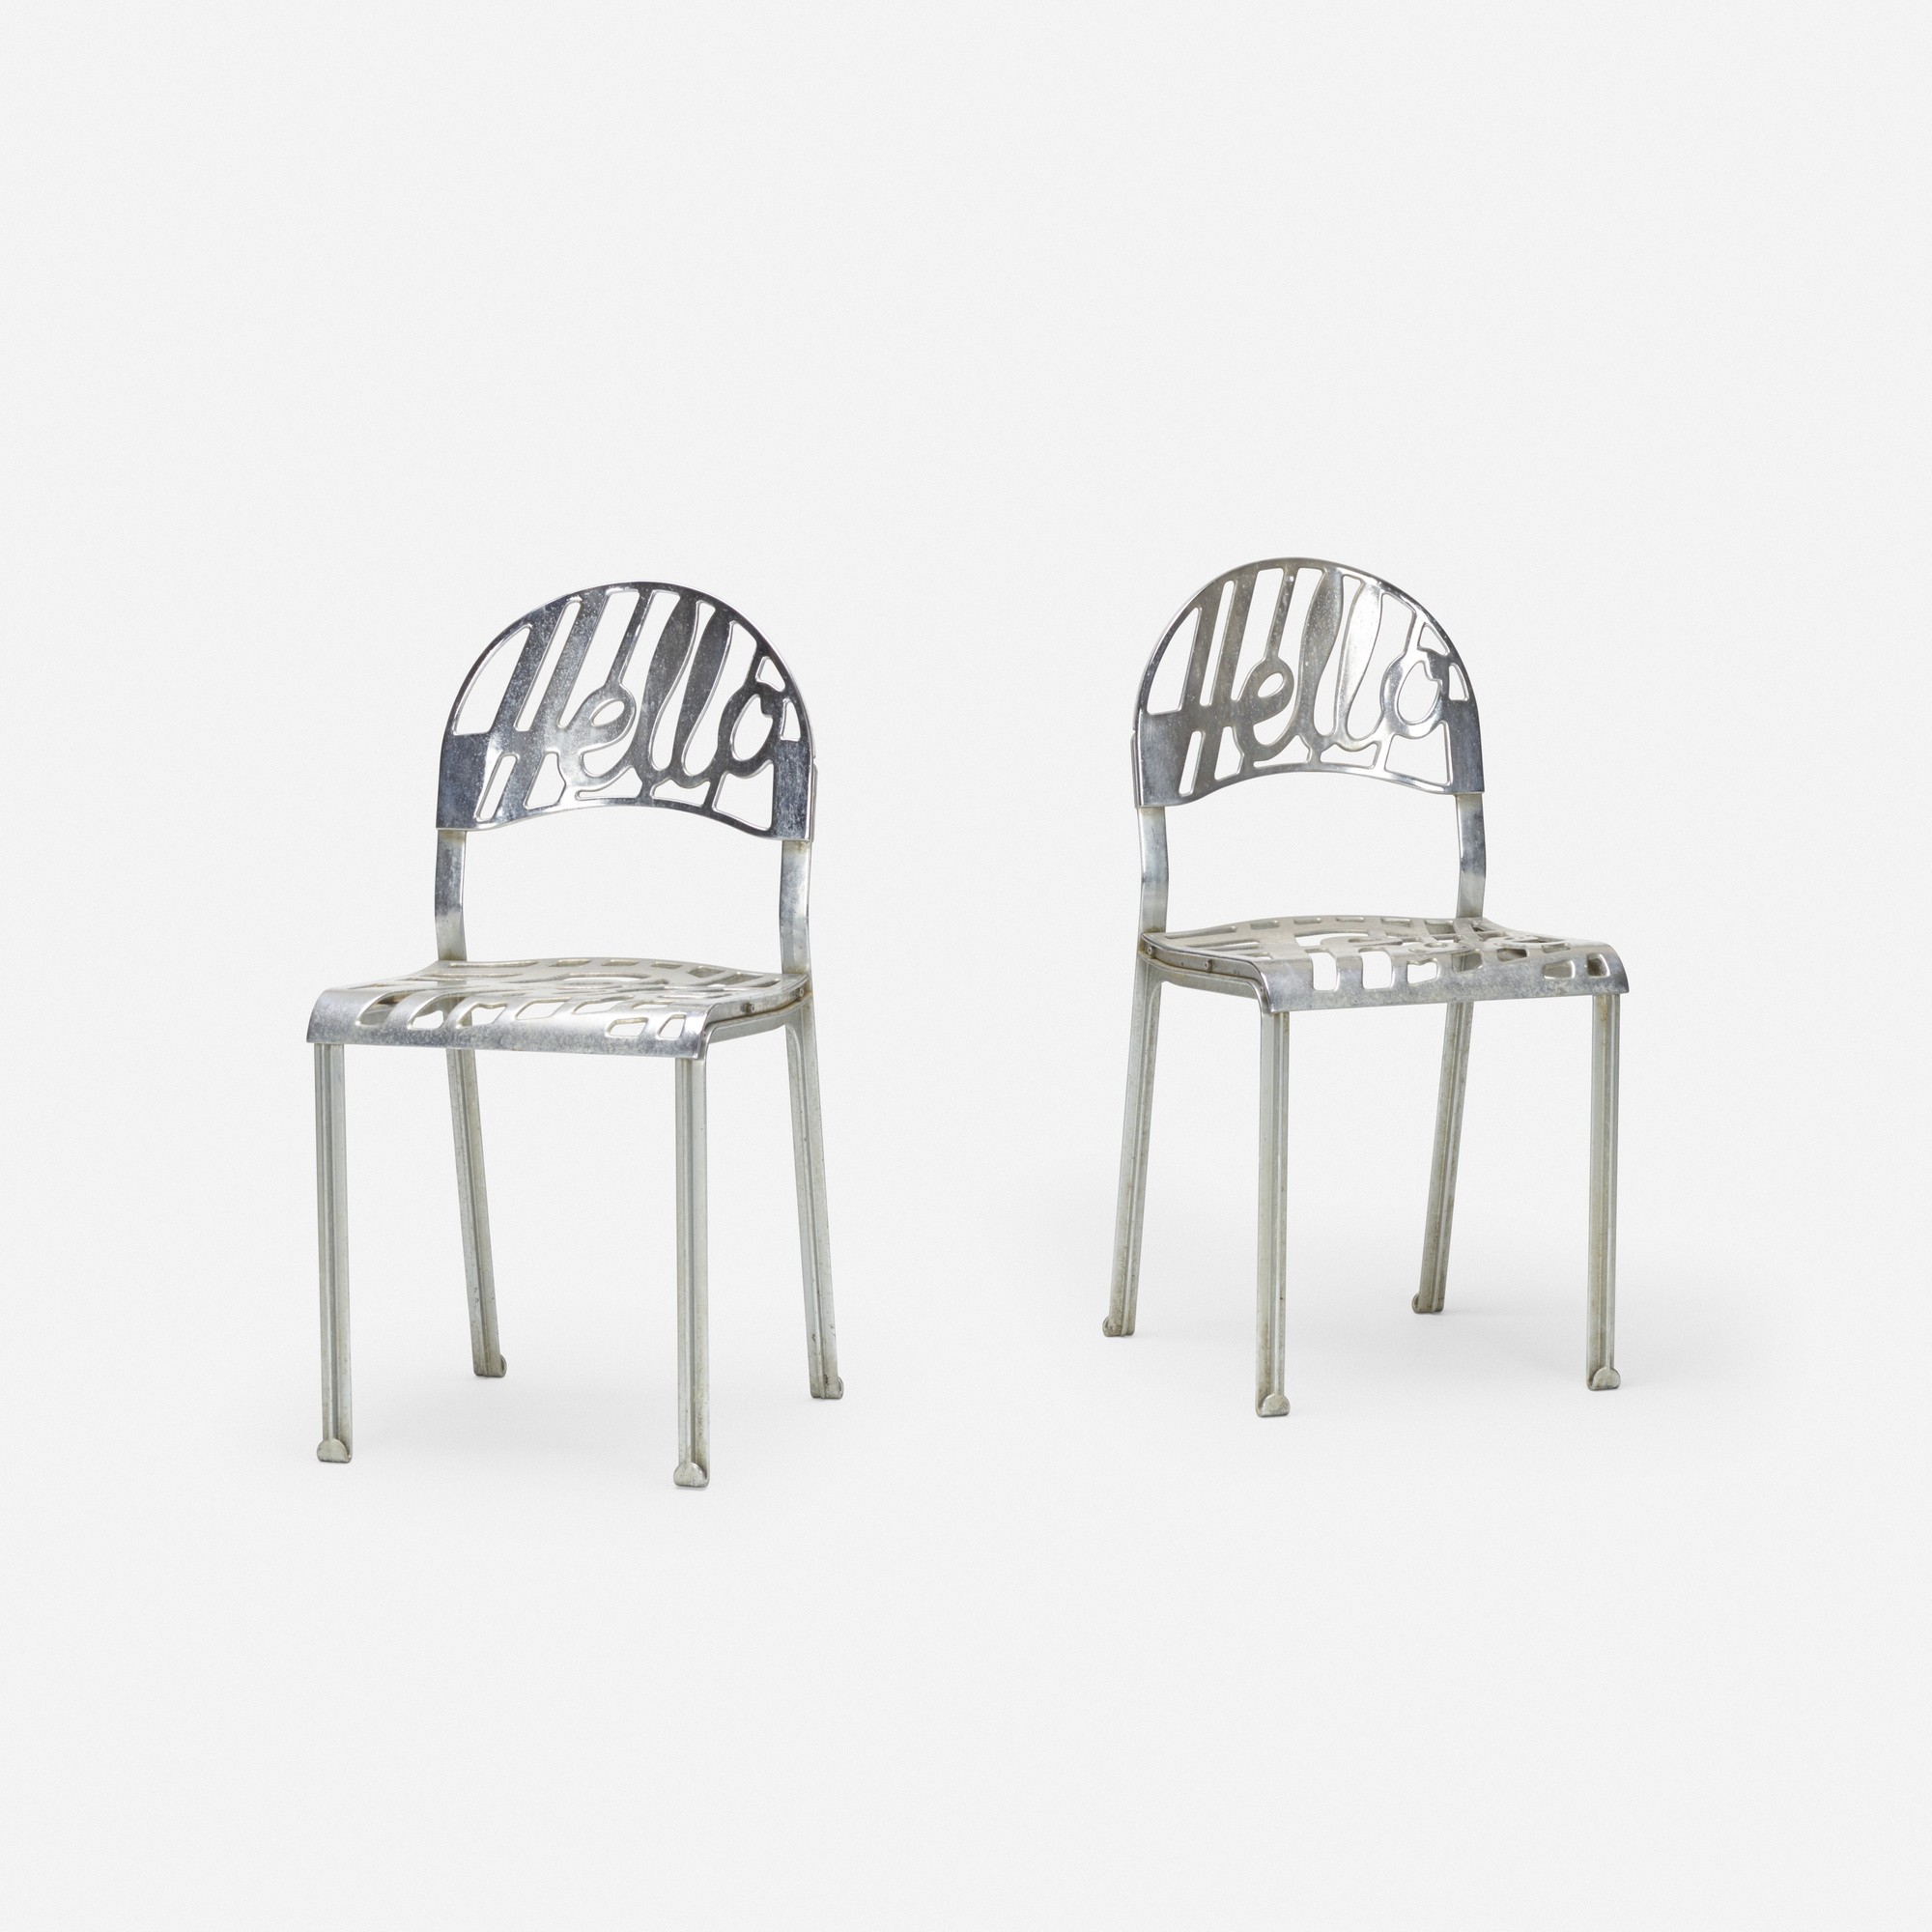 371: Jeremy Harvey / Hello There chairs, pair (1 of 2)